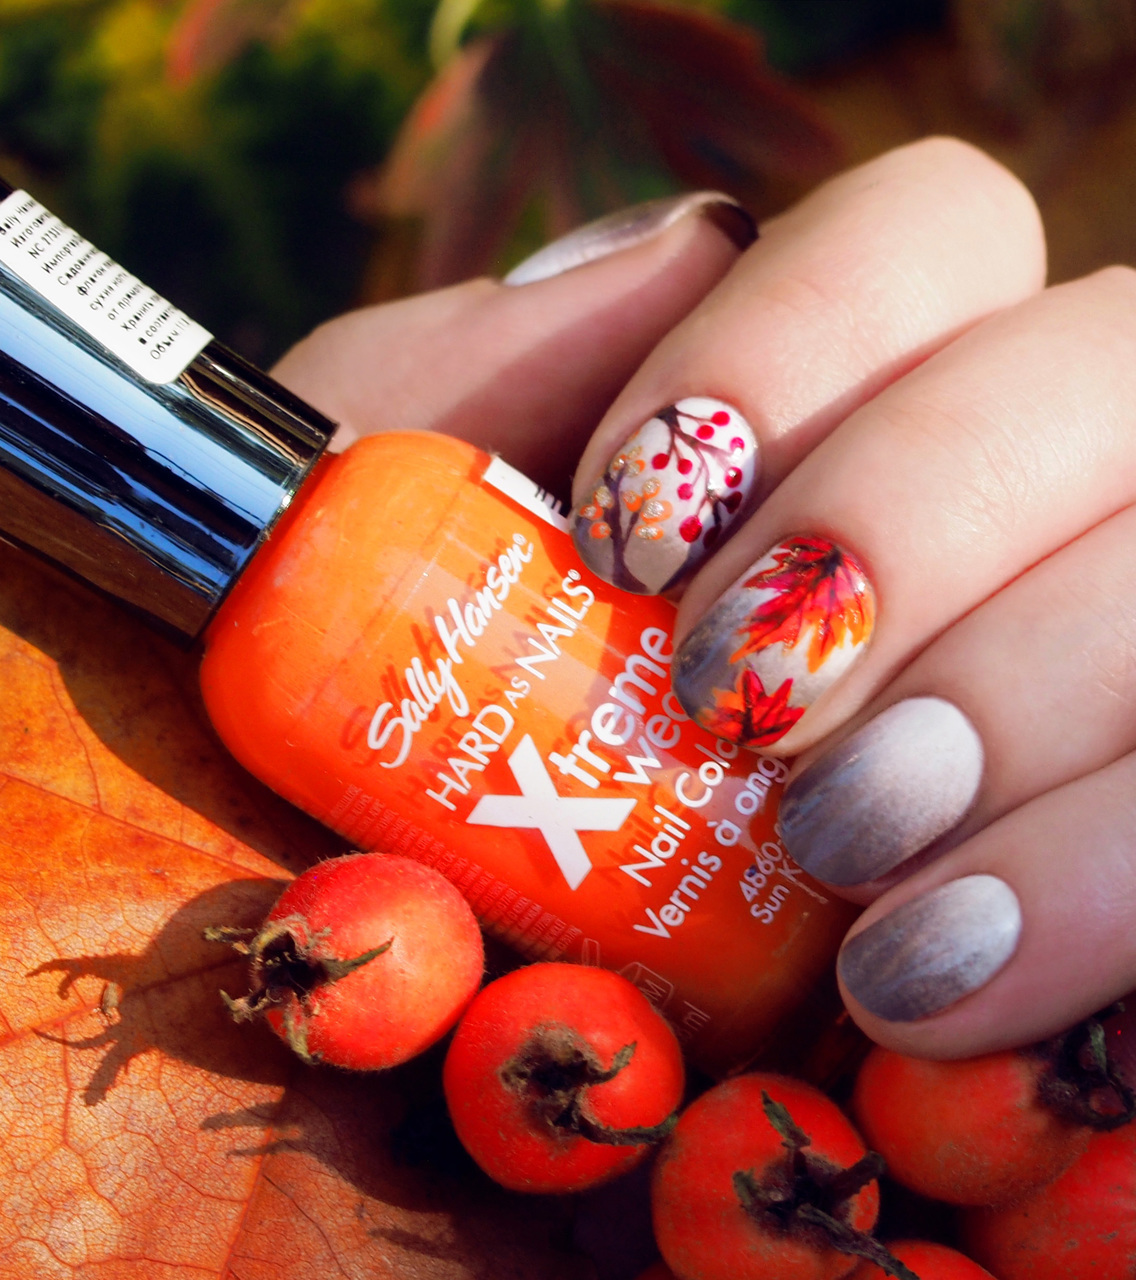 autumn, berries, branch, branches, brown, gray, leaves, manicure, maple, maple leaves, nail, nail art, nails, october, orange, red, rowan, sally hansen, tree, trees, white, yellow